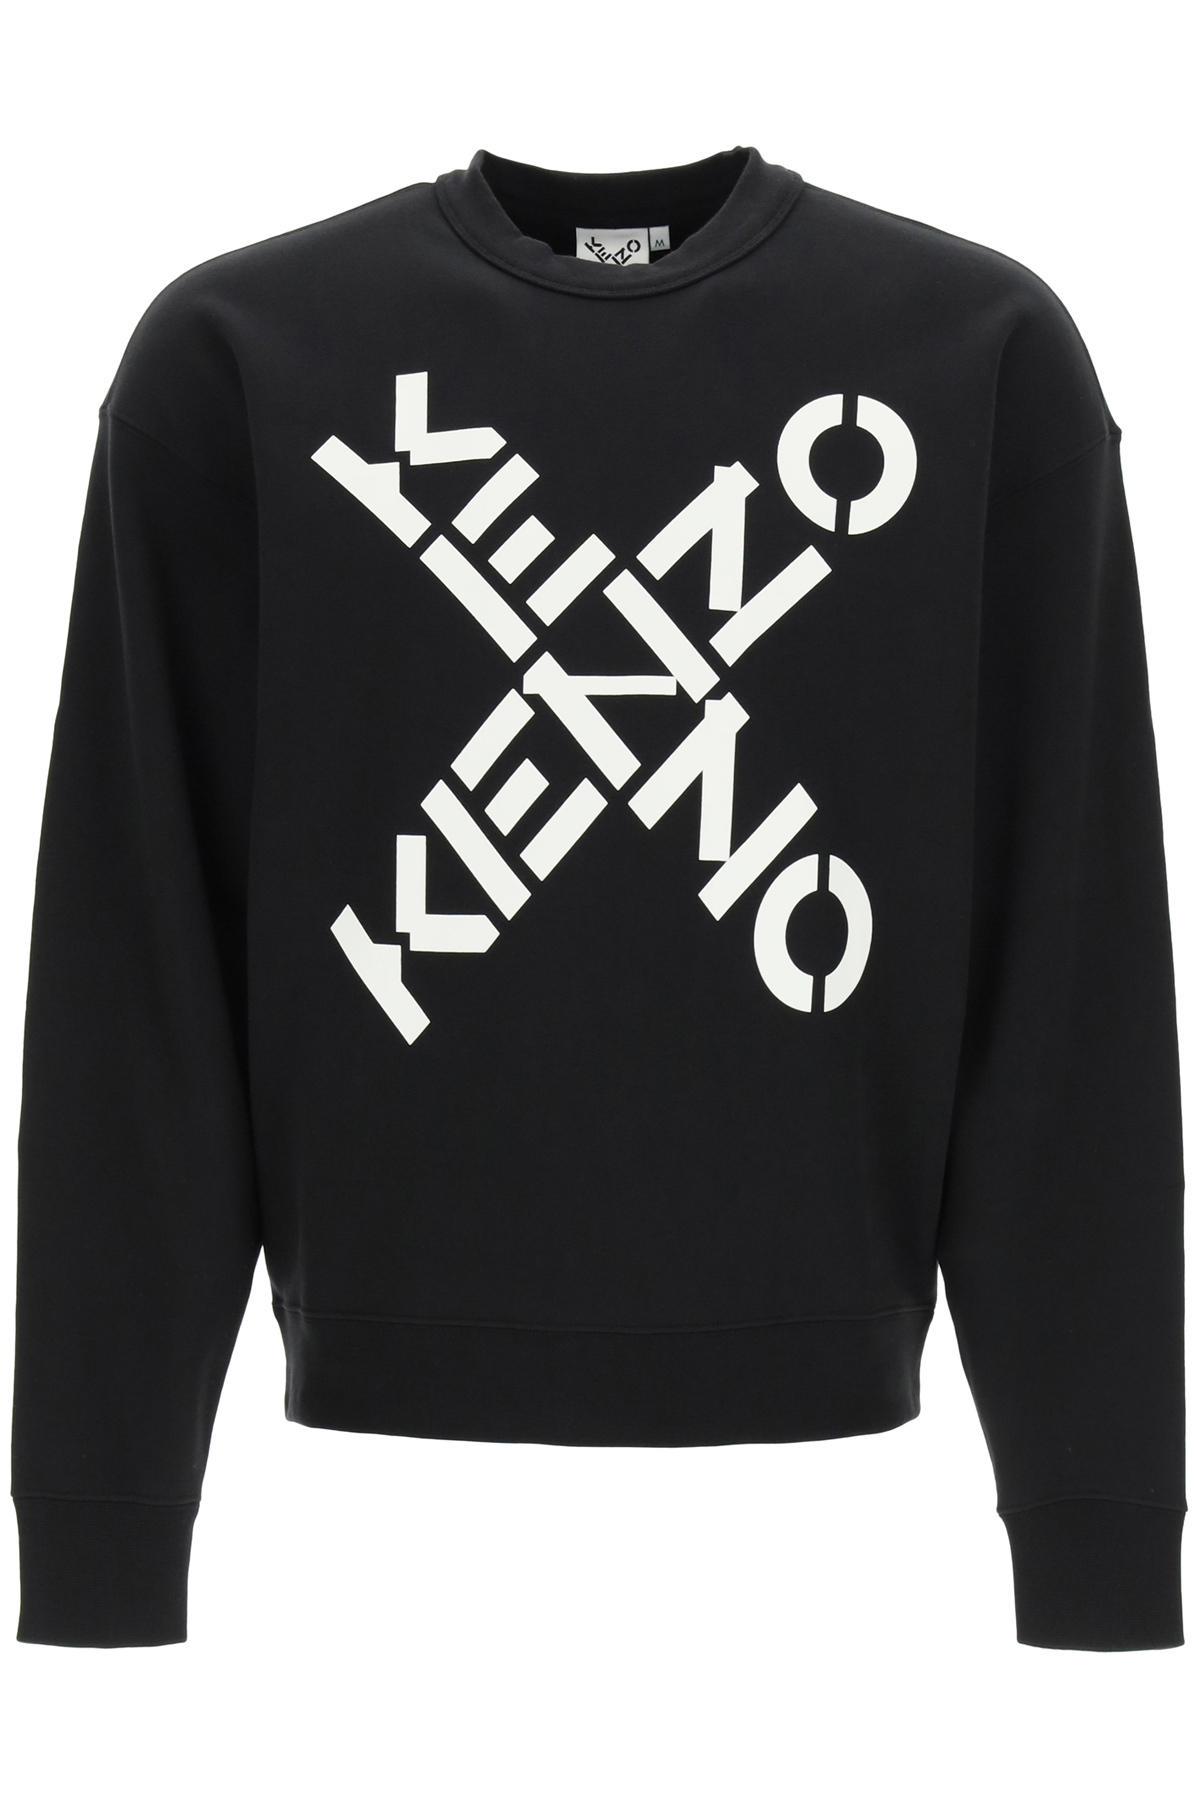 KENZO KENZO SPORT BIG X SWEATSHIRT XL Black, White Cotton